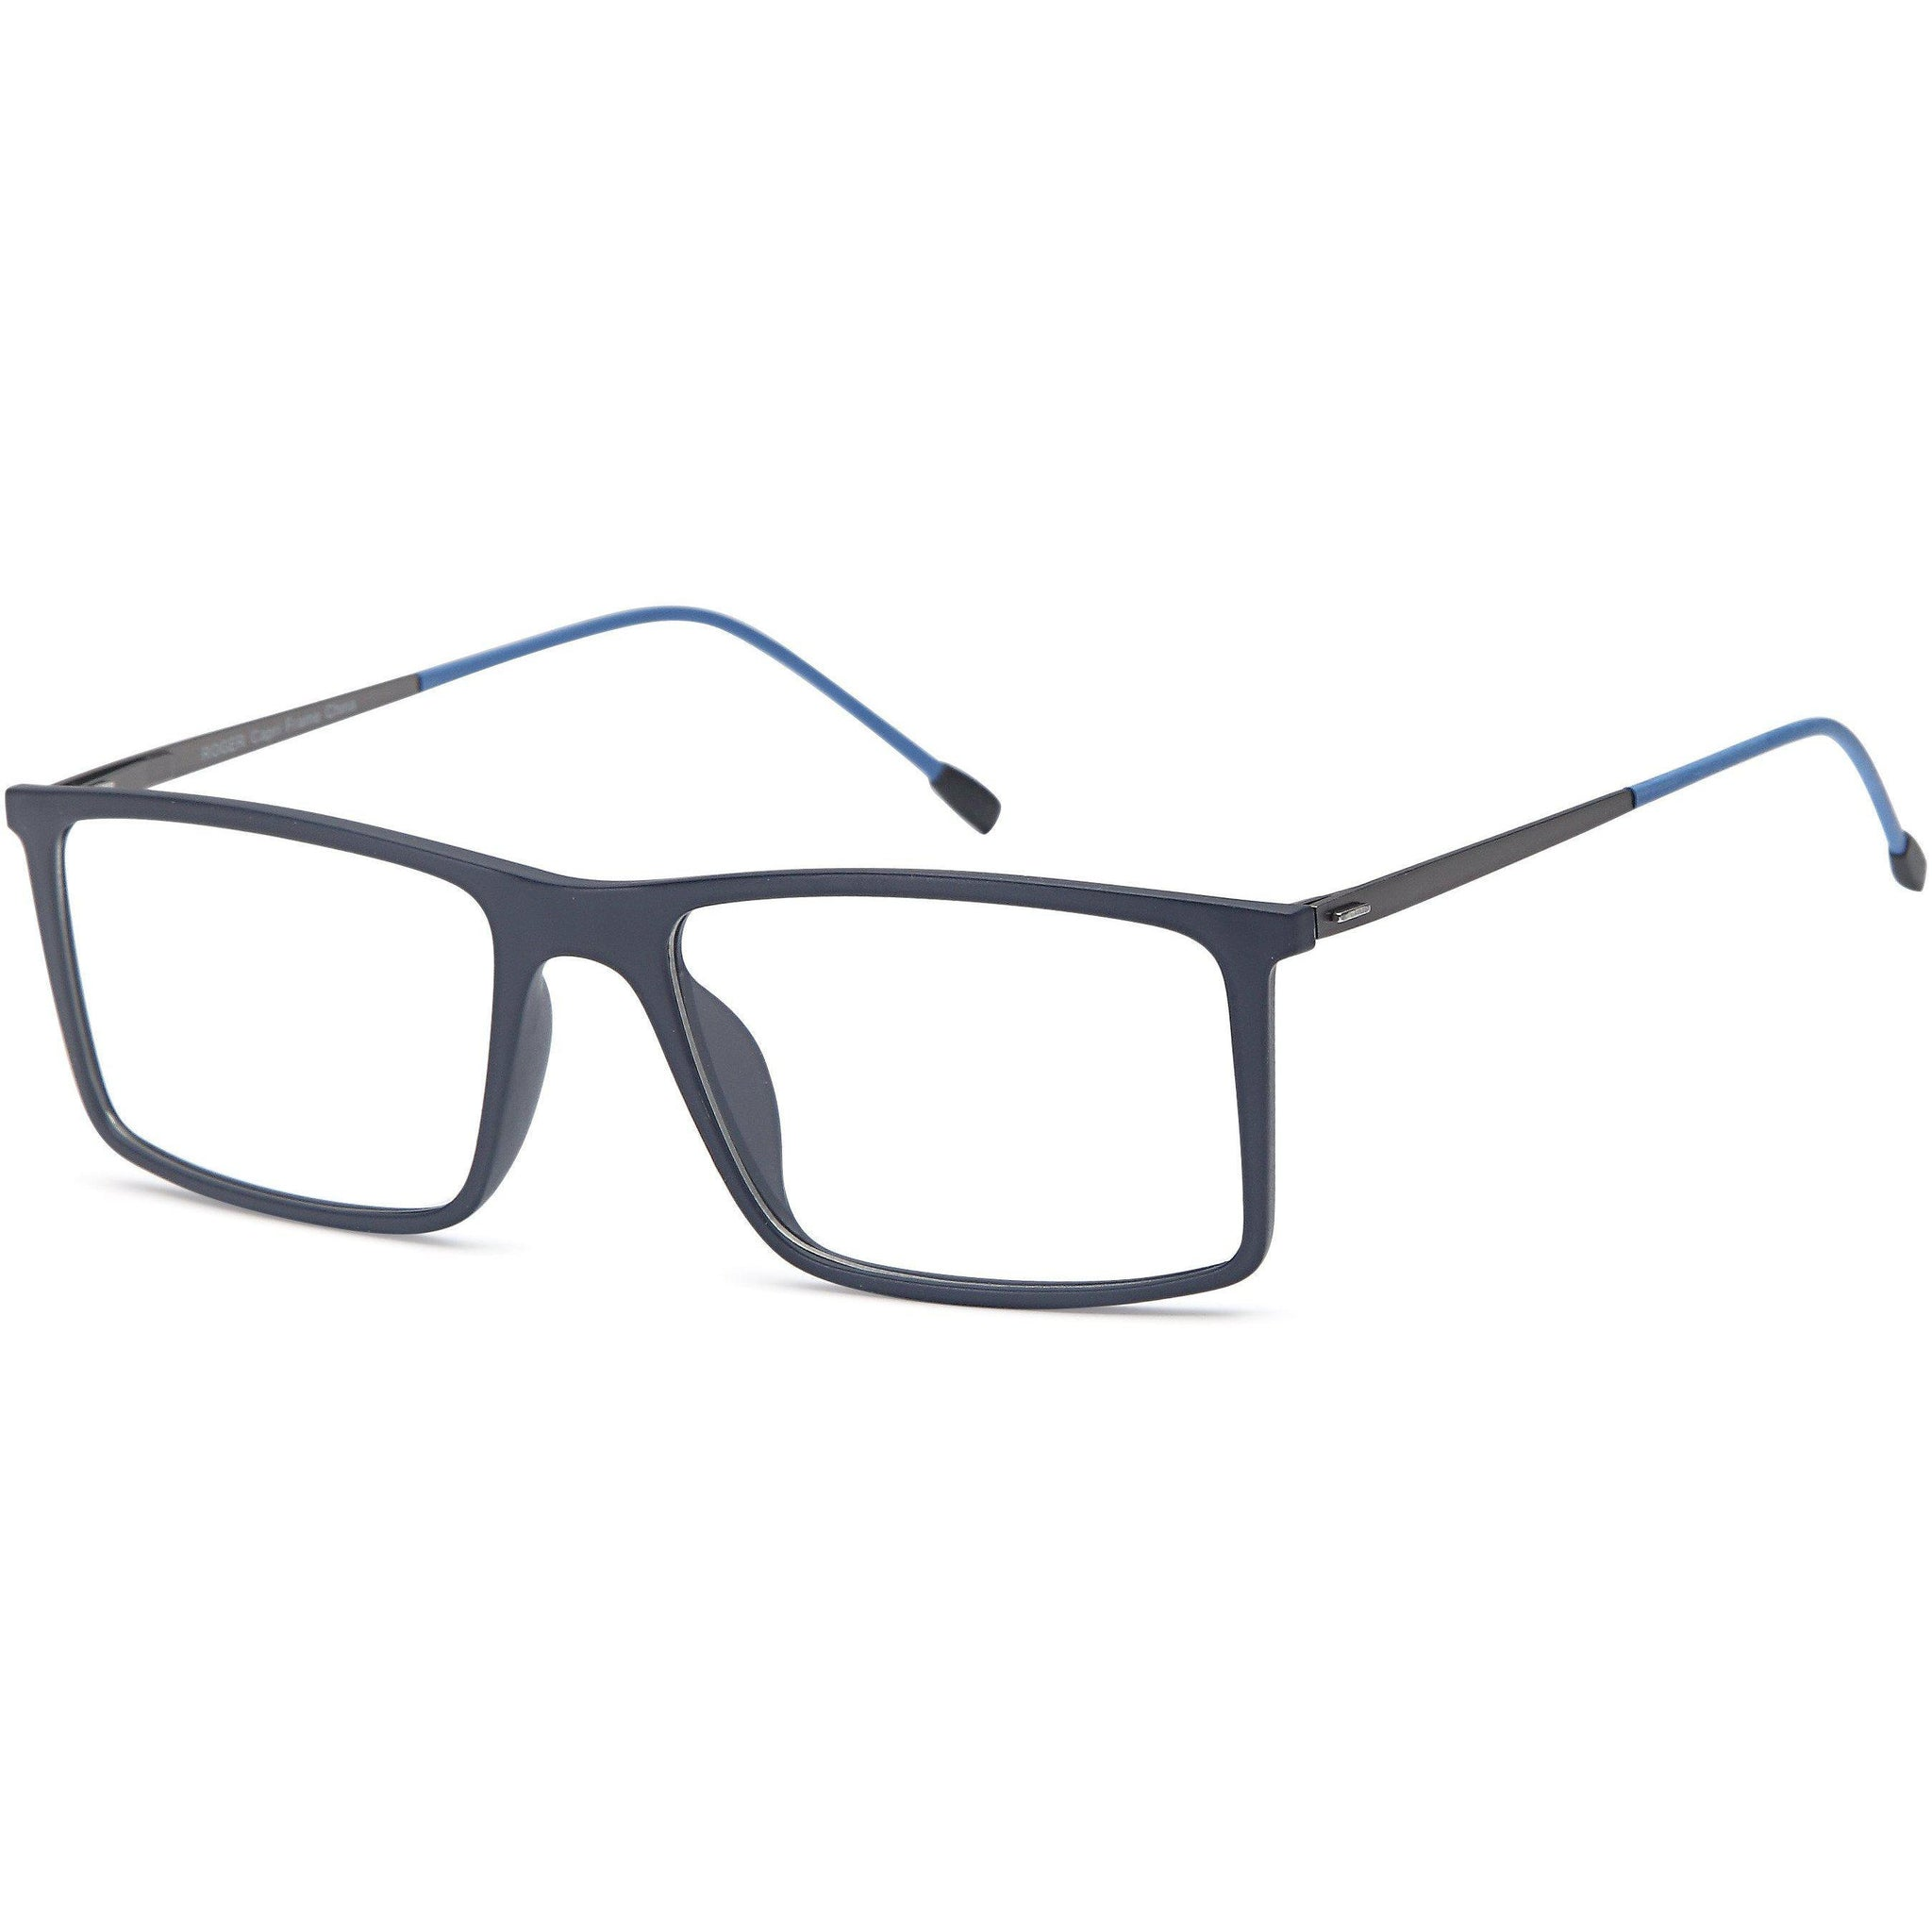 The Icons Prescription Glasses ROGER Eyeglasses Frame